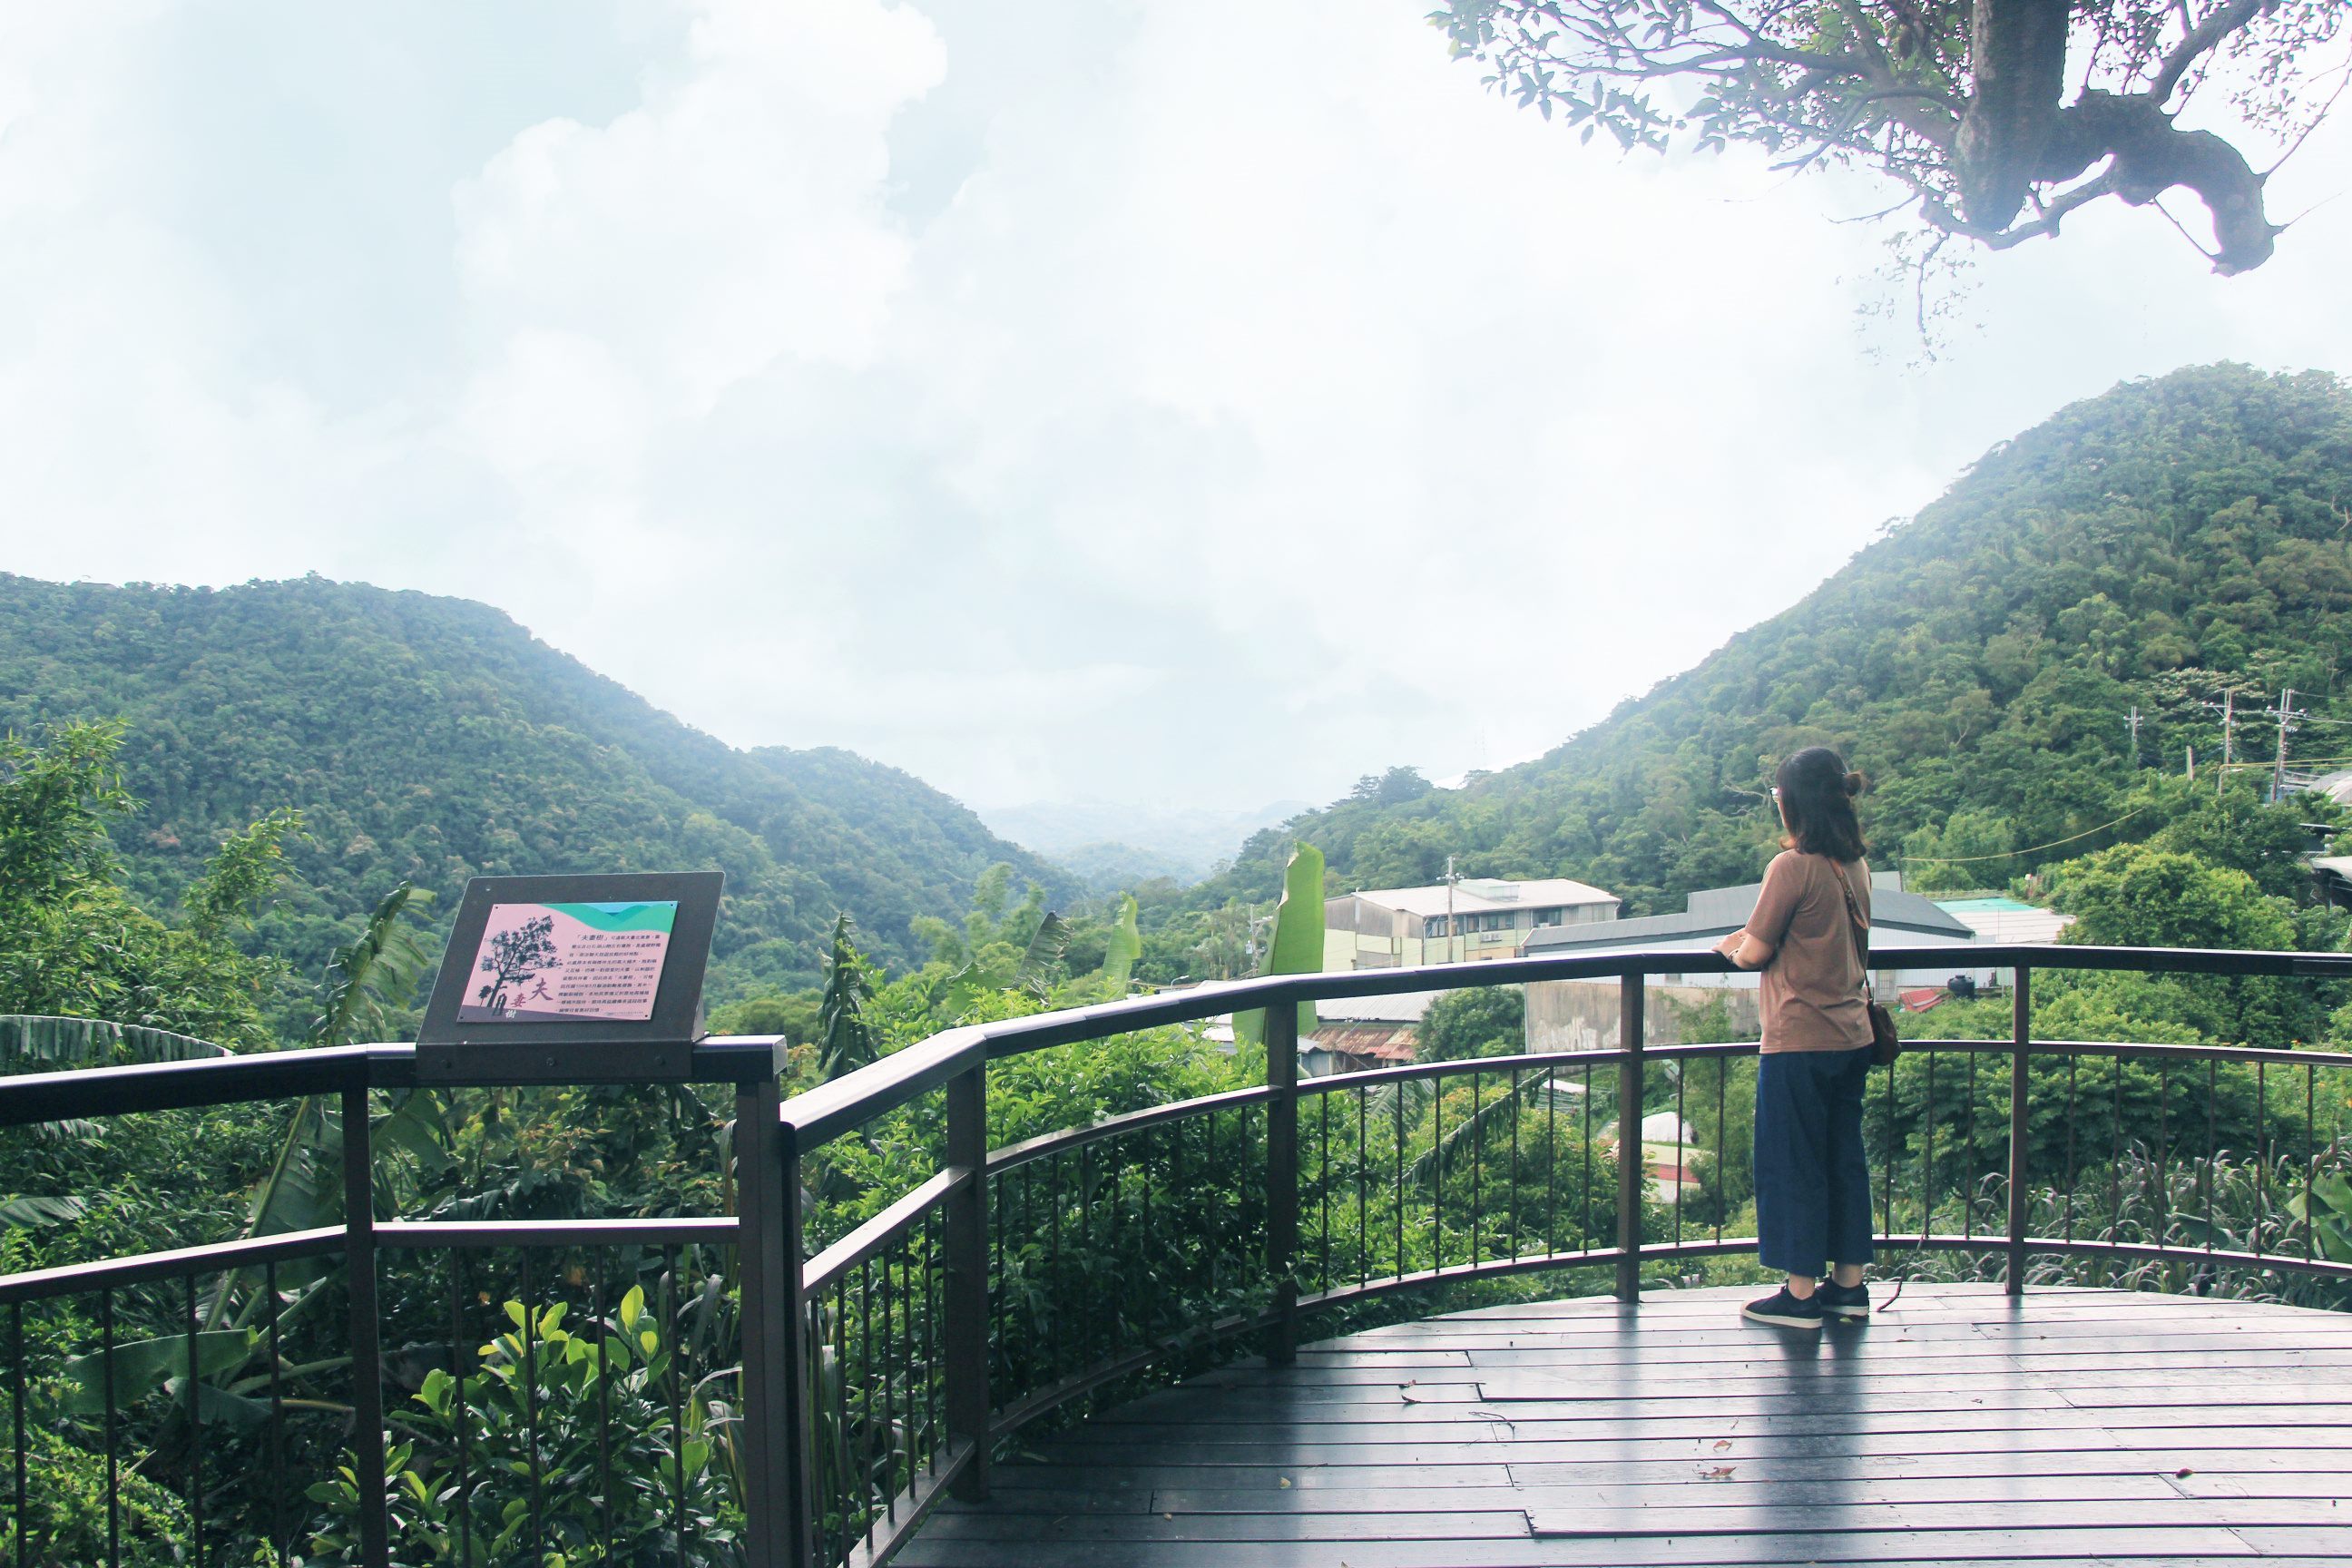 A view from the observation deck at Baishihu